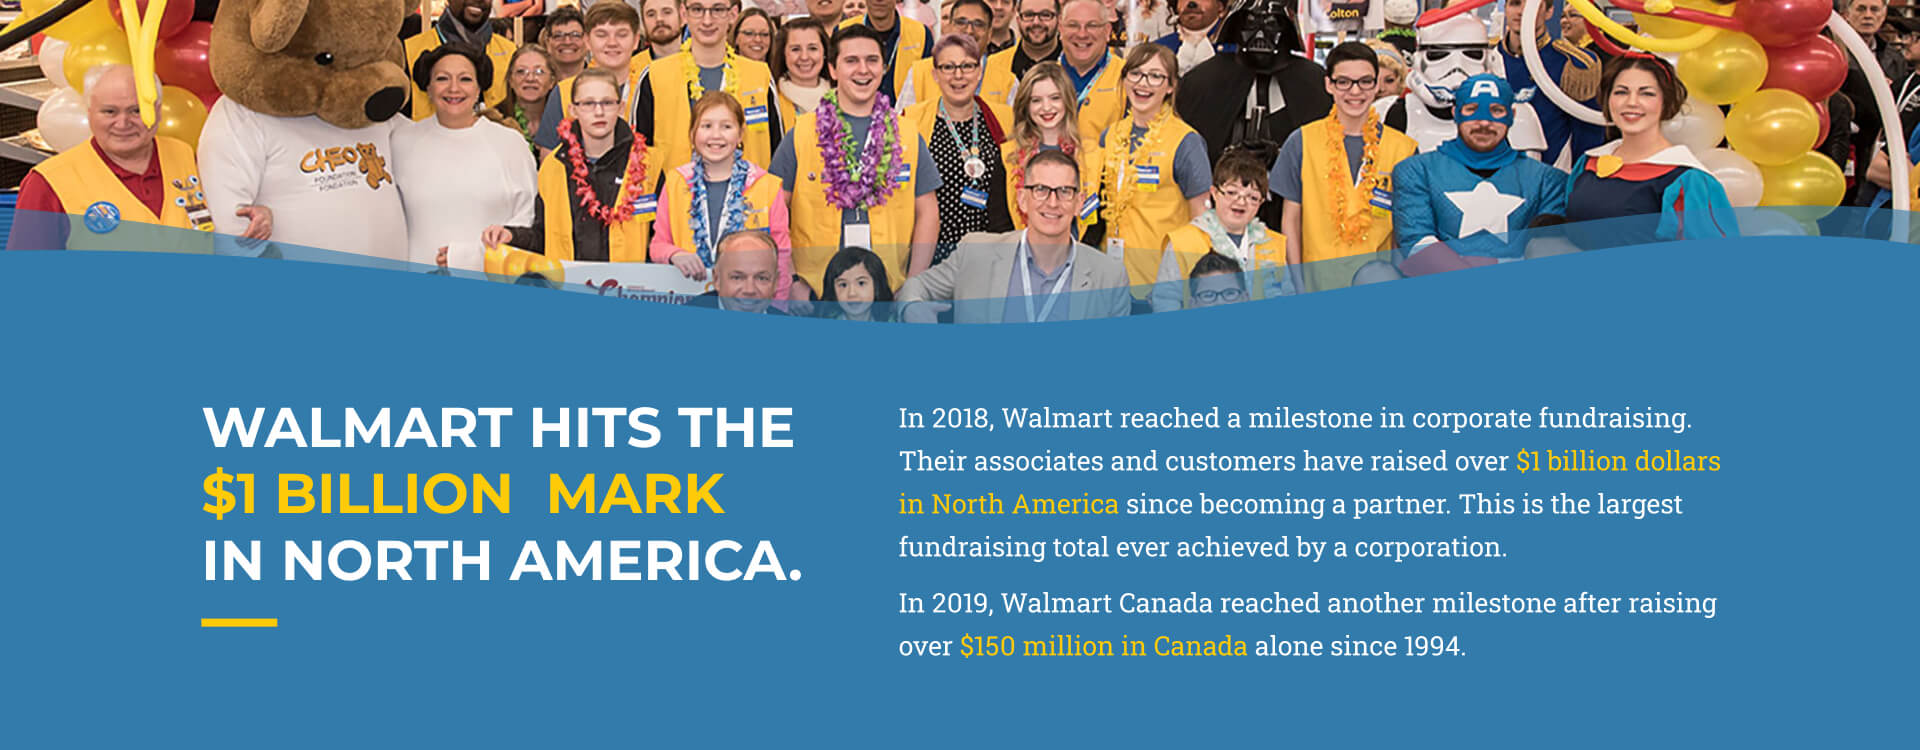 Slide 6 - Walmart hits the $1b mark in North America. In 2018, Walmart reached a milestone in corporate fundraising. Their employees and customers have raised over $1 billion dollars in North America since becoming a partner. This is the largest fundraising total ever achieved by a corporation. In 2019, Walmart Canada reached another milestone after raising over $150 million in Canada alone since 1994.